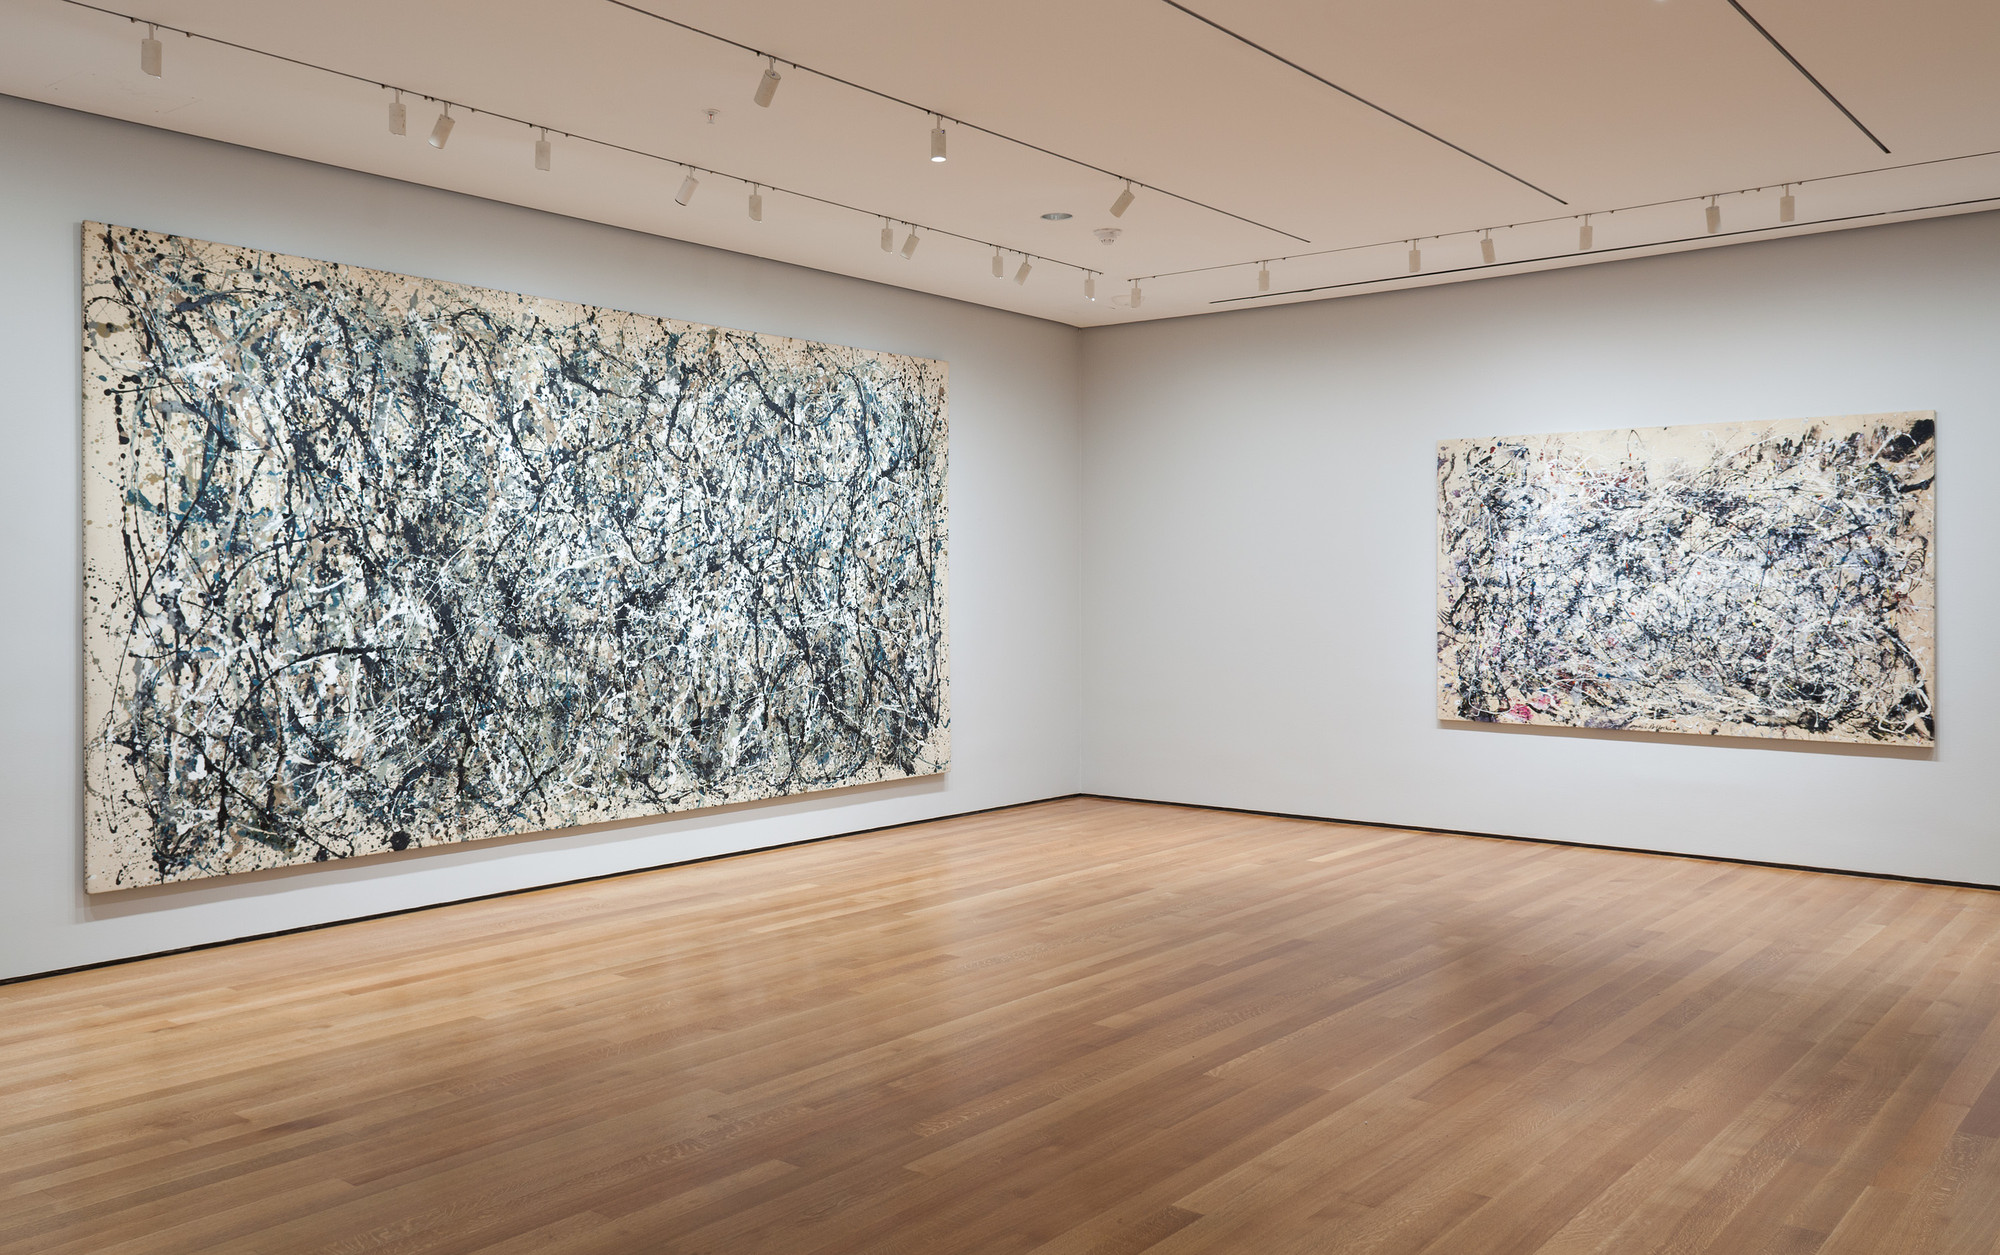 Installation view of Jackson Pollock: A Collection Survey, 1934–1954 at The Museum of Modern Art, New York (November 22, 2015–March 13, 2016). Photo by Thomas Griesel. © 2015 The Museum of Modern Art, New York